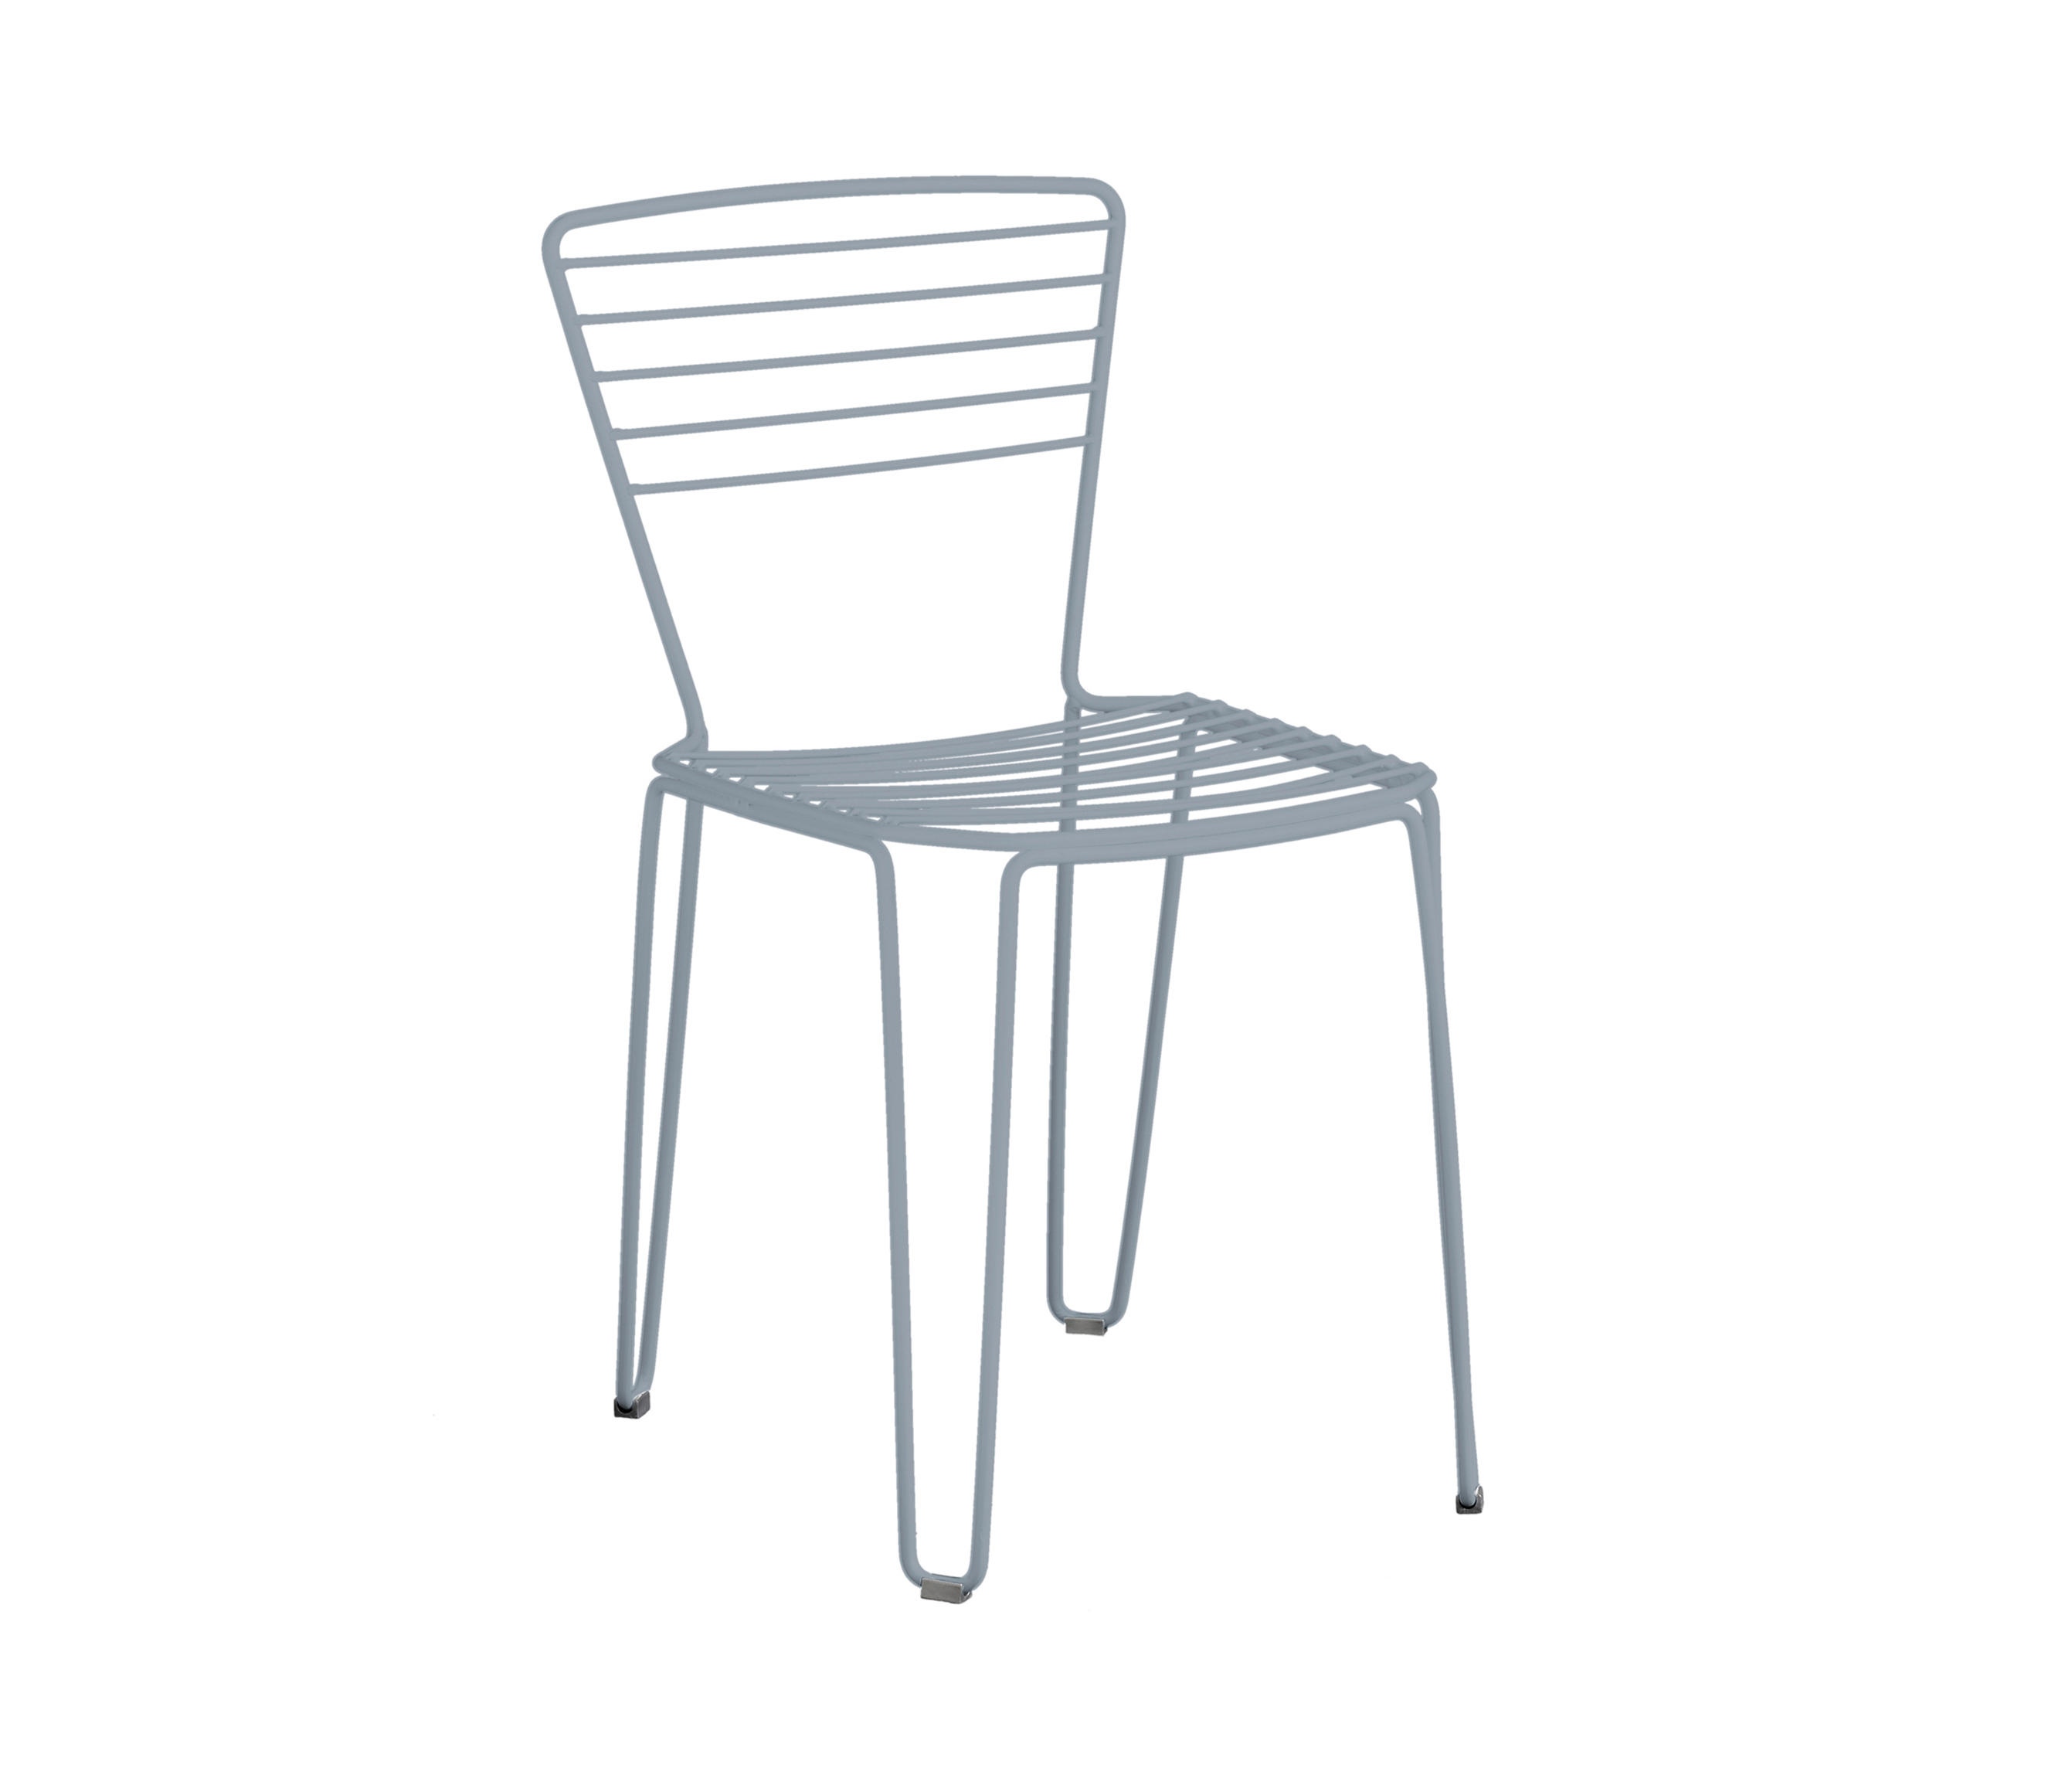 Chairs Seat Steel High Quality Designer Architonic Dining Chair Ac 113 Menorca Isimar